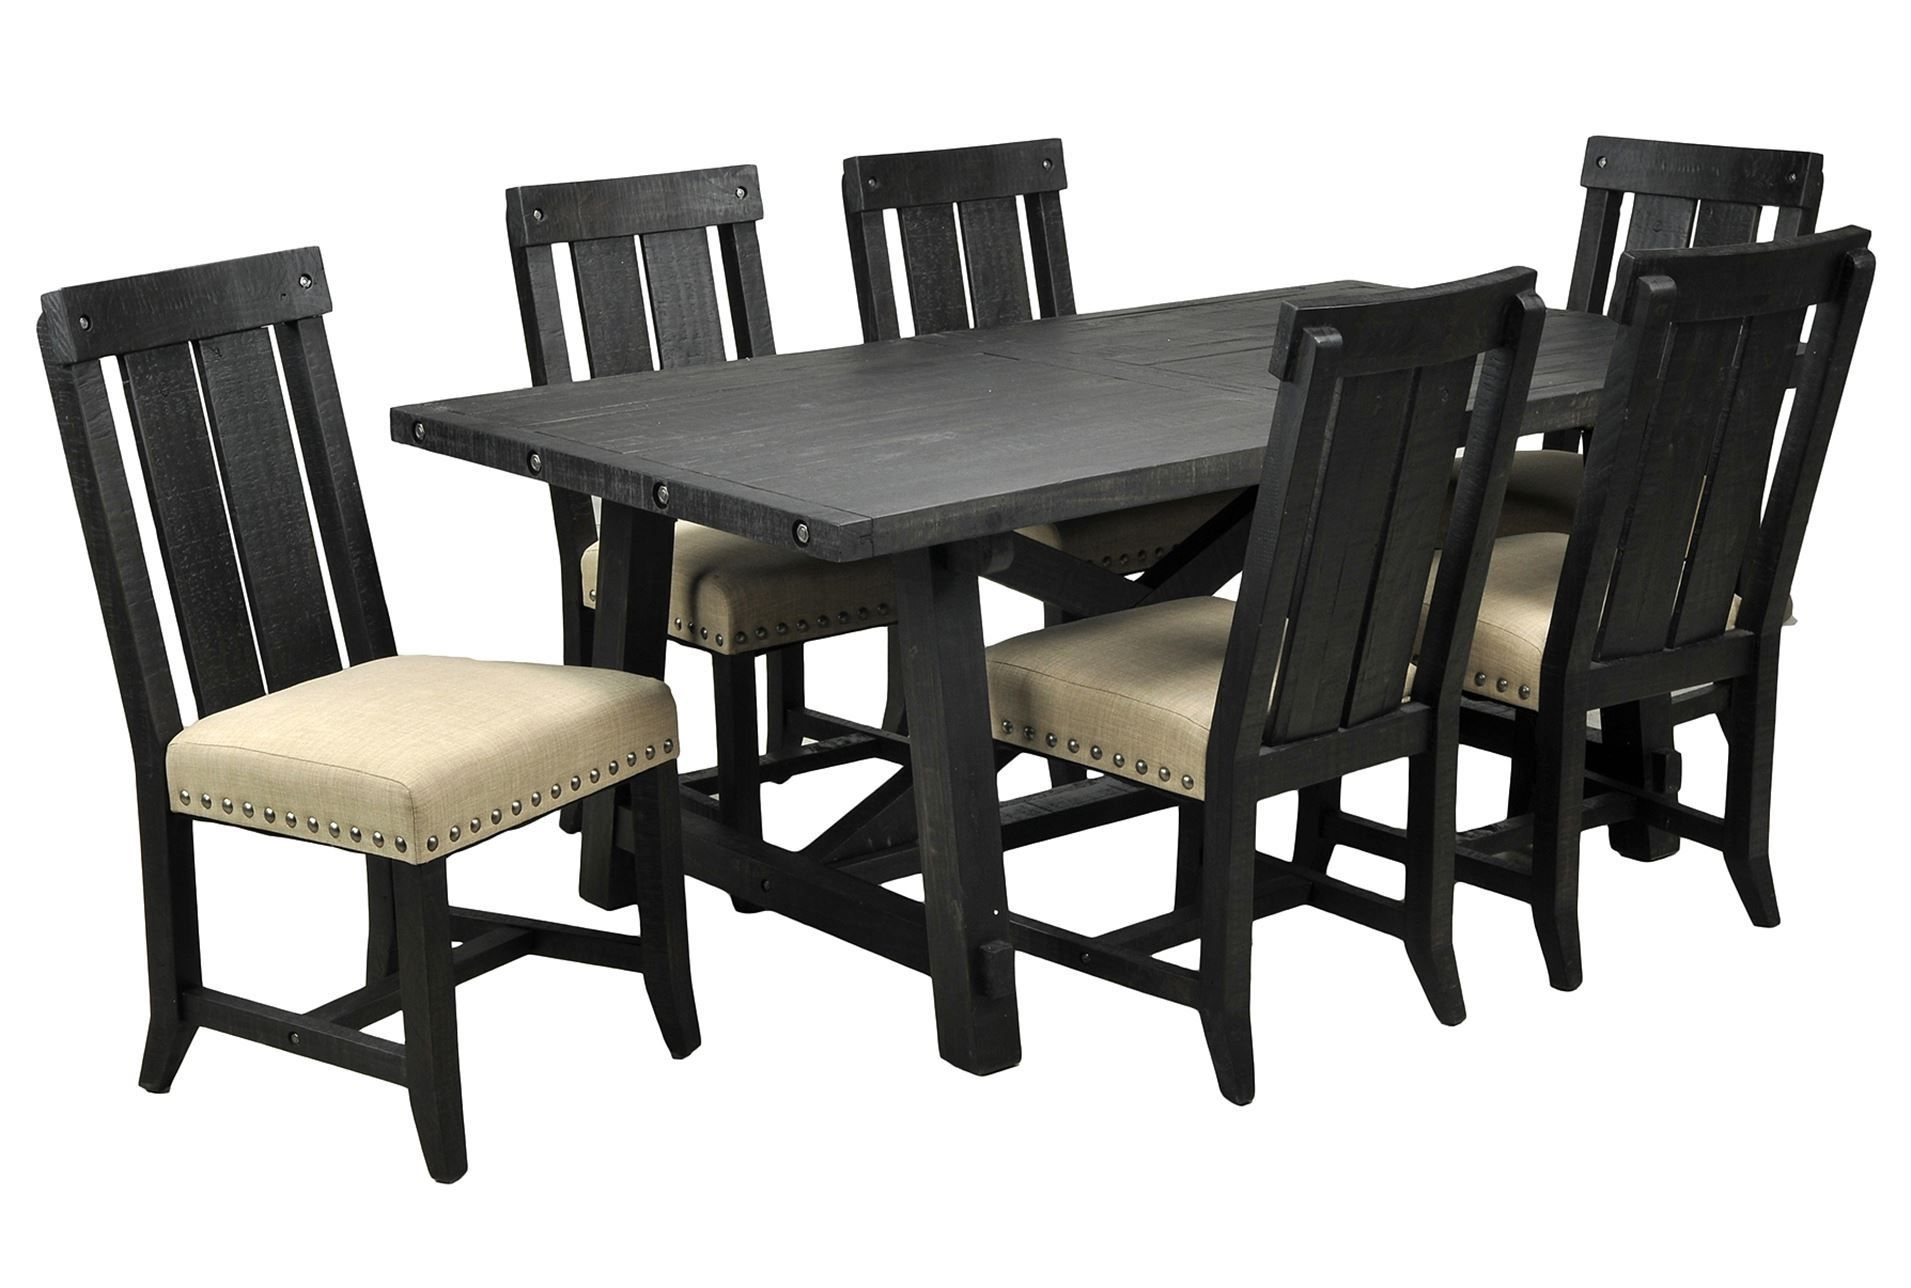 Jaxon 7 Piece Rectangle Dining Set W/wood Chairs | For The House I In Newest Jaxon Grey 5 Piece Extension Counter Sets With Fabric Stools (Image 13 of 20)